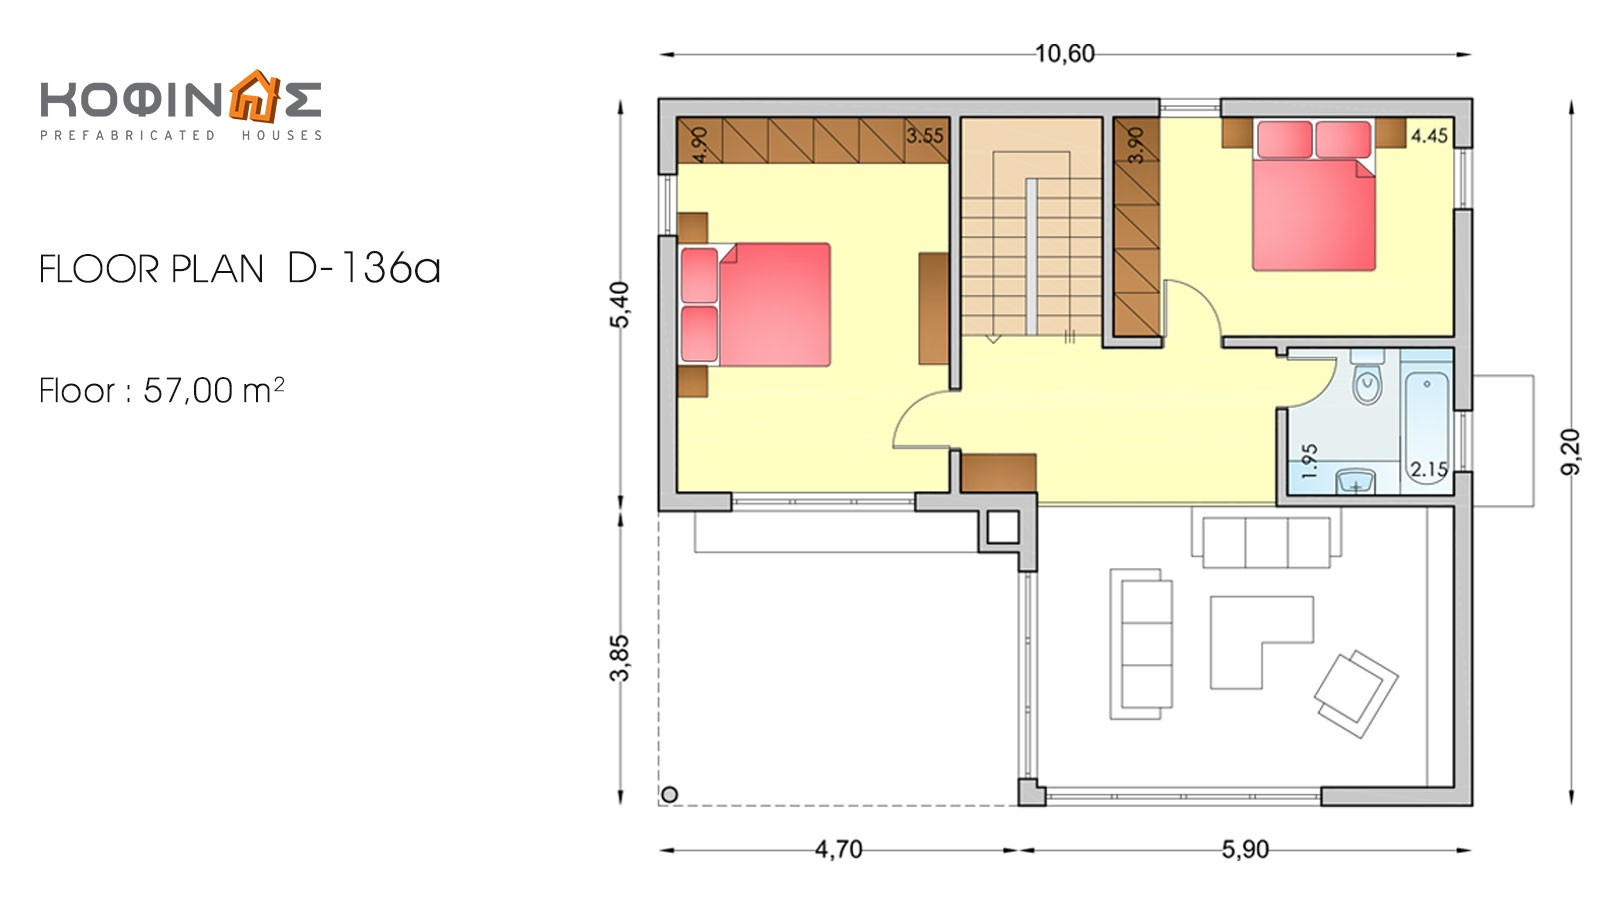 2-story house D-136a, total surface of 136,72 m²